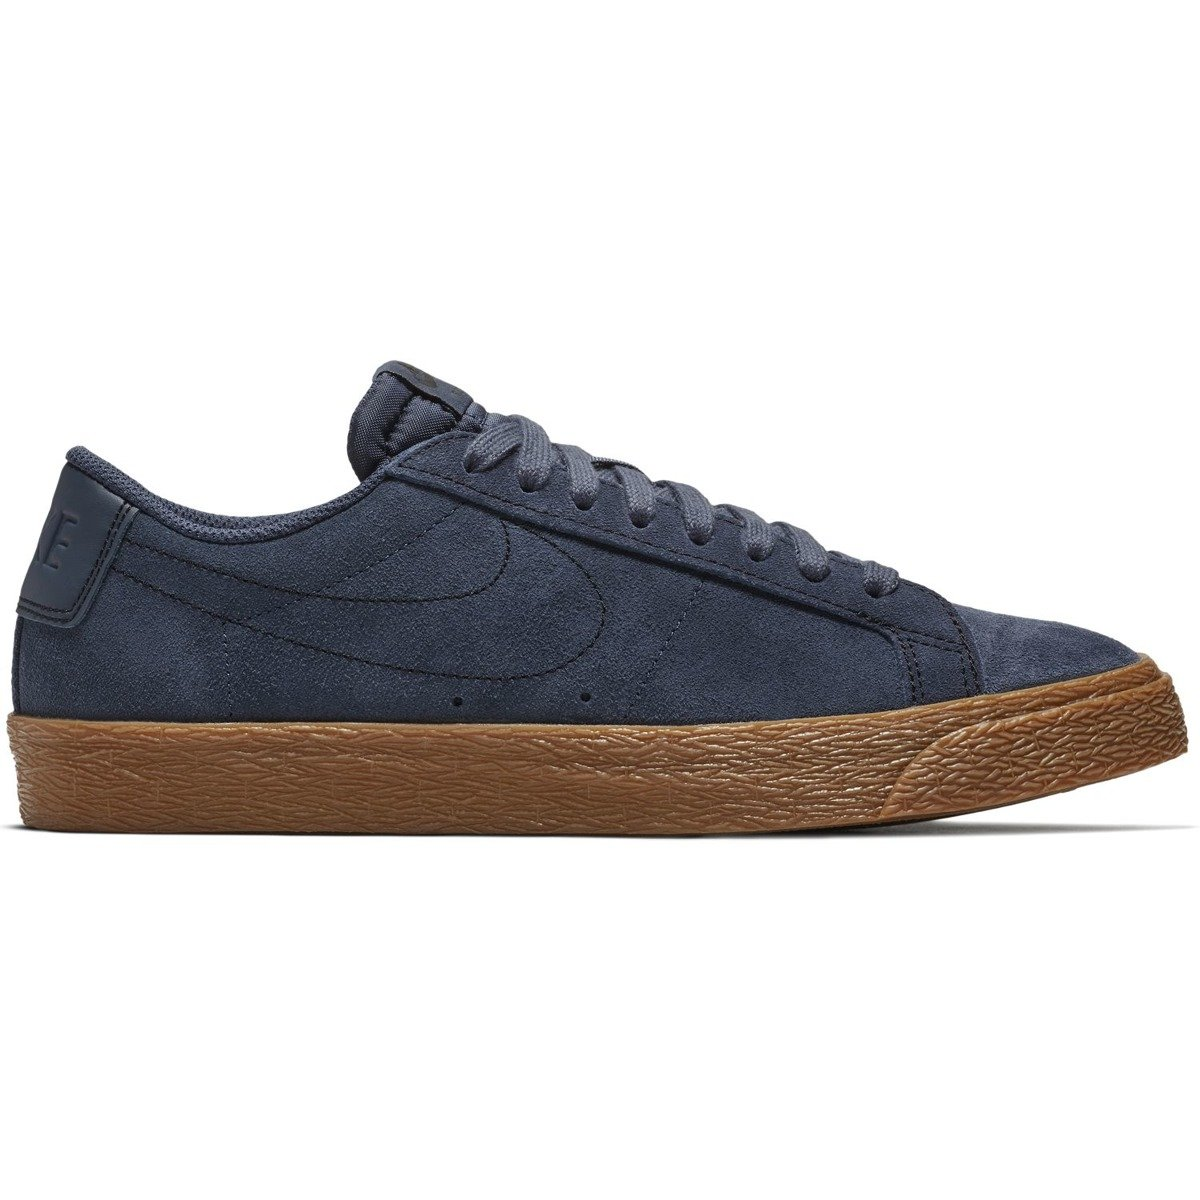 21c0bfc1cd89b shoes nike sb zoom blazer low thunder blue thunder blue-gum med brown Click  to zoom ...